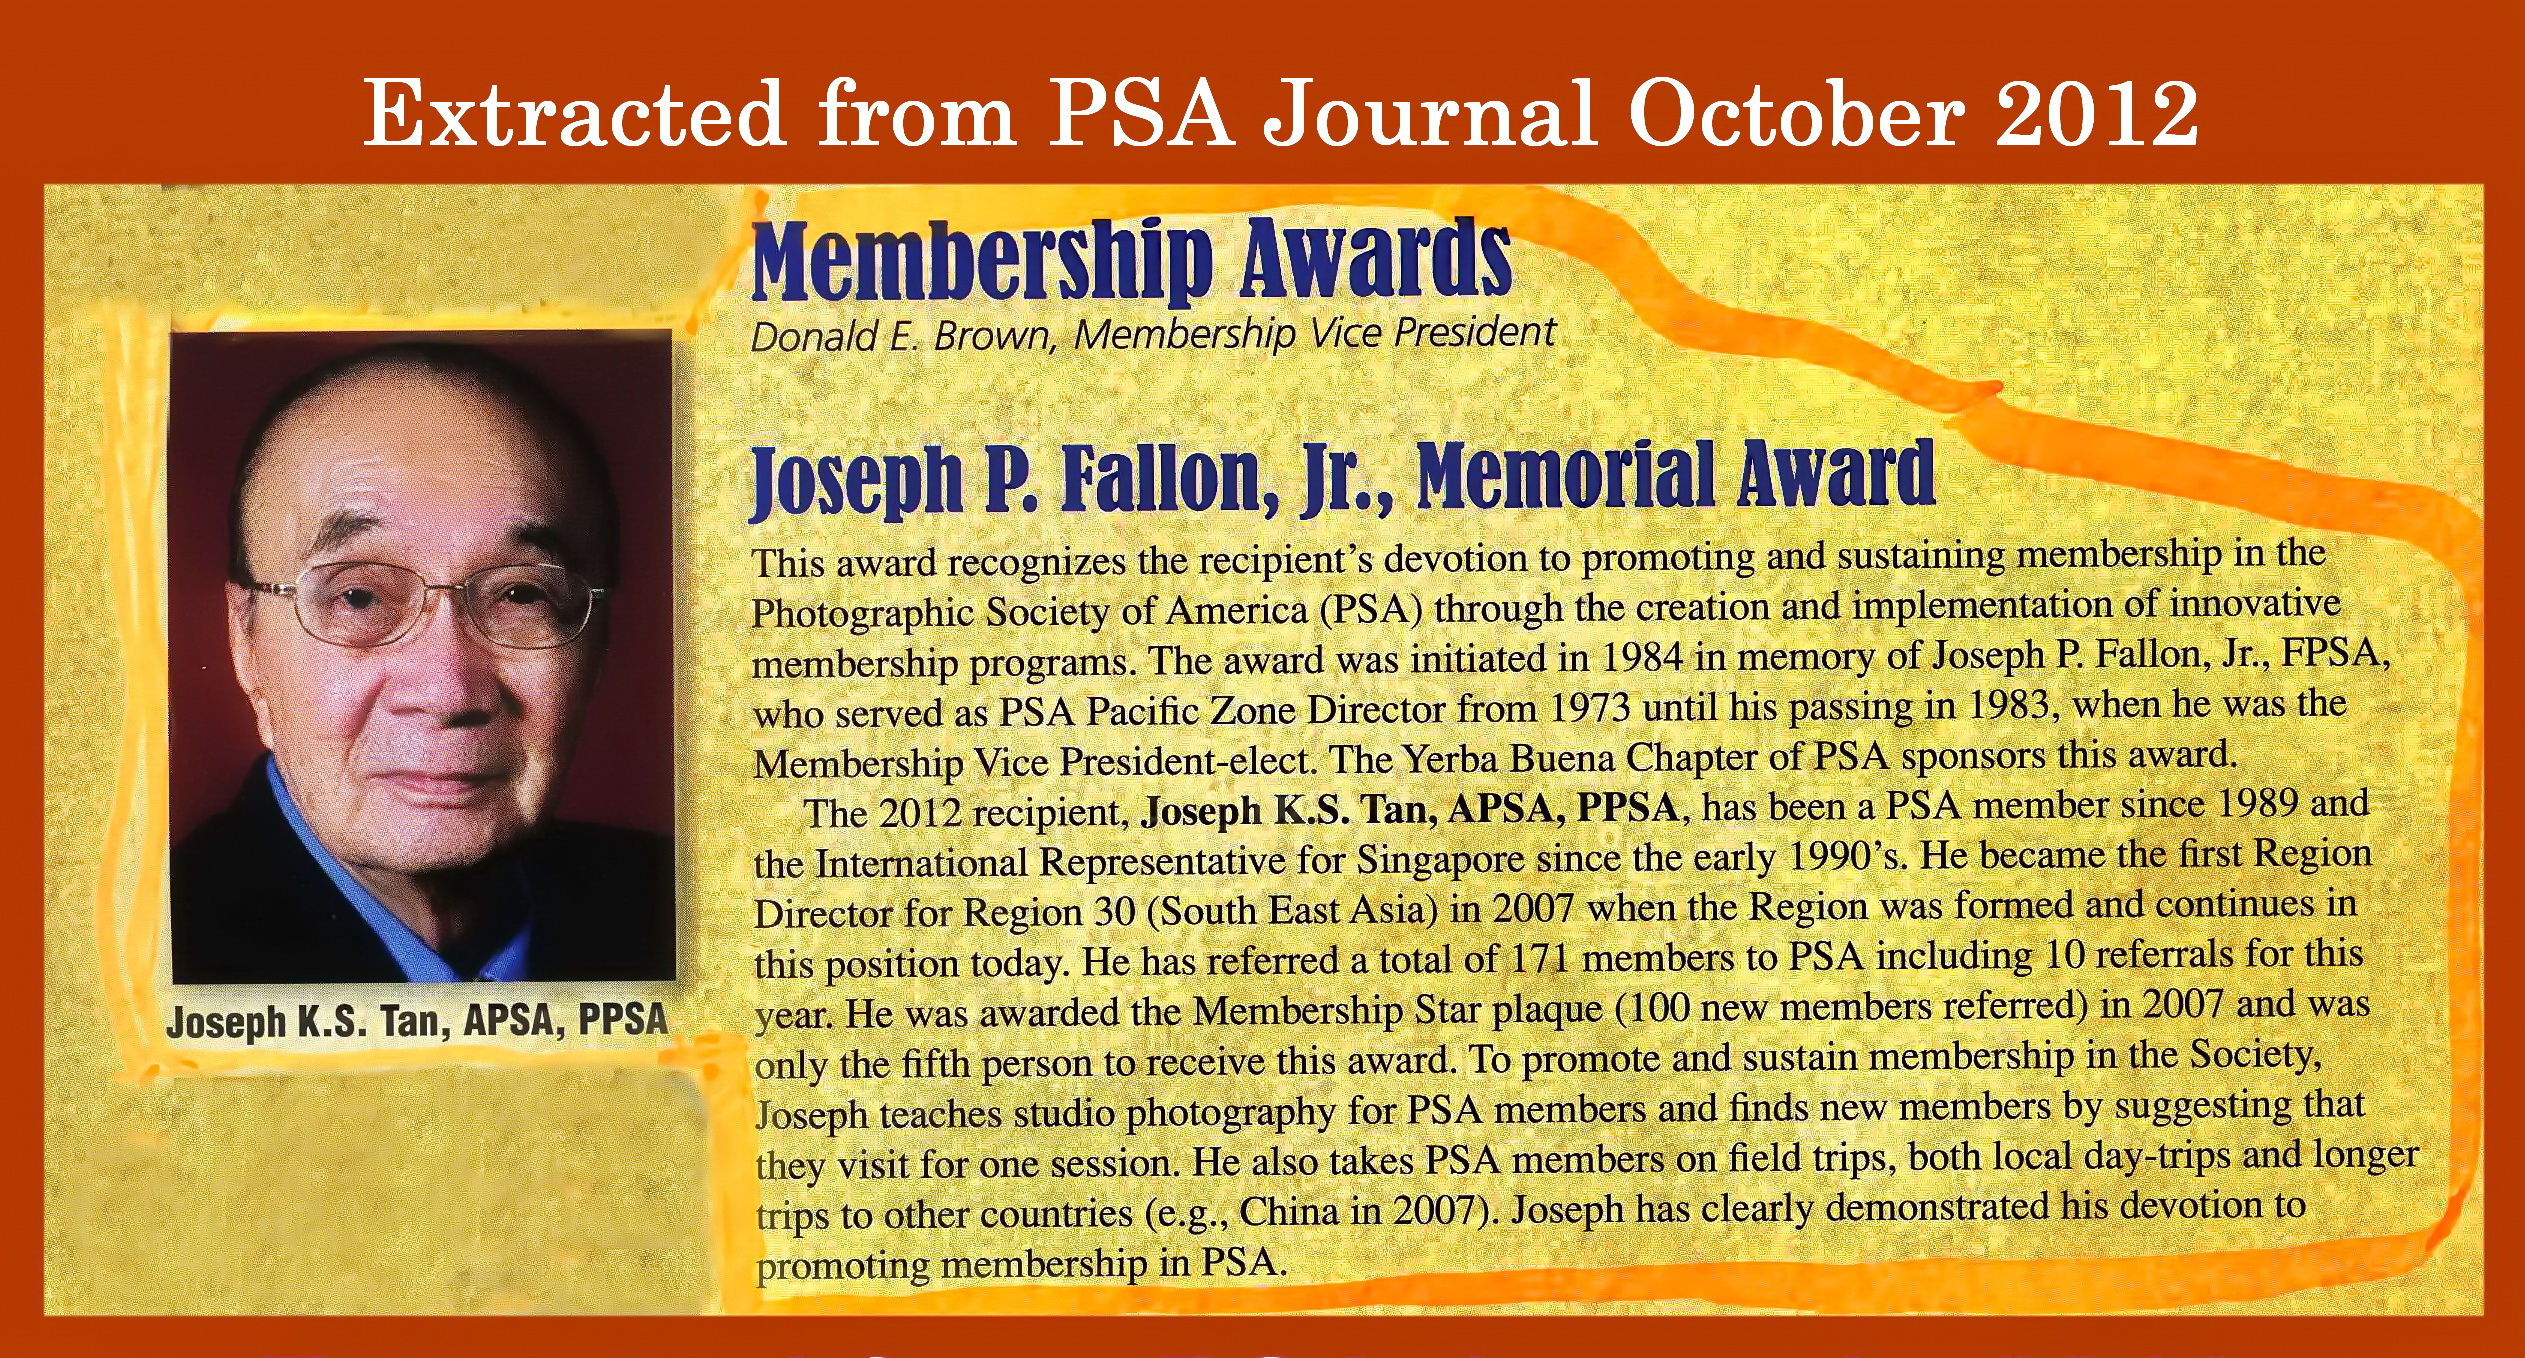 Testimonial from Donald E Brown(Membership Vice President For PSA)